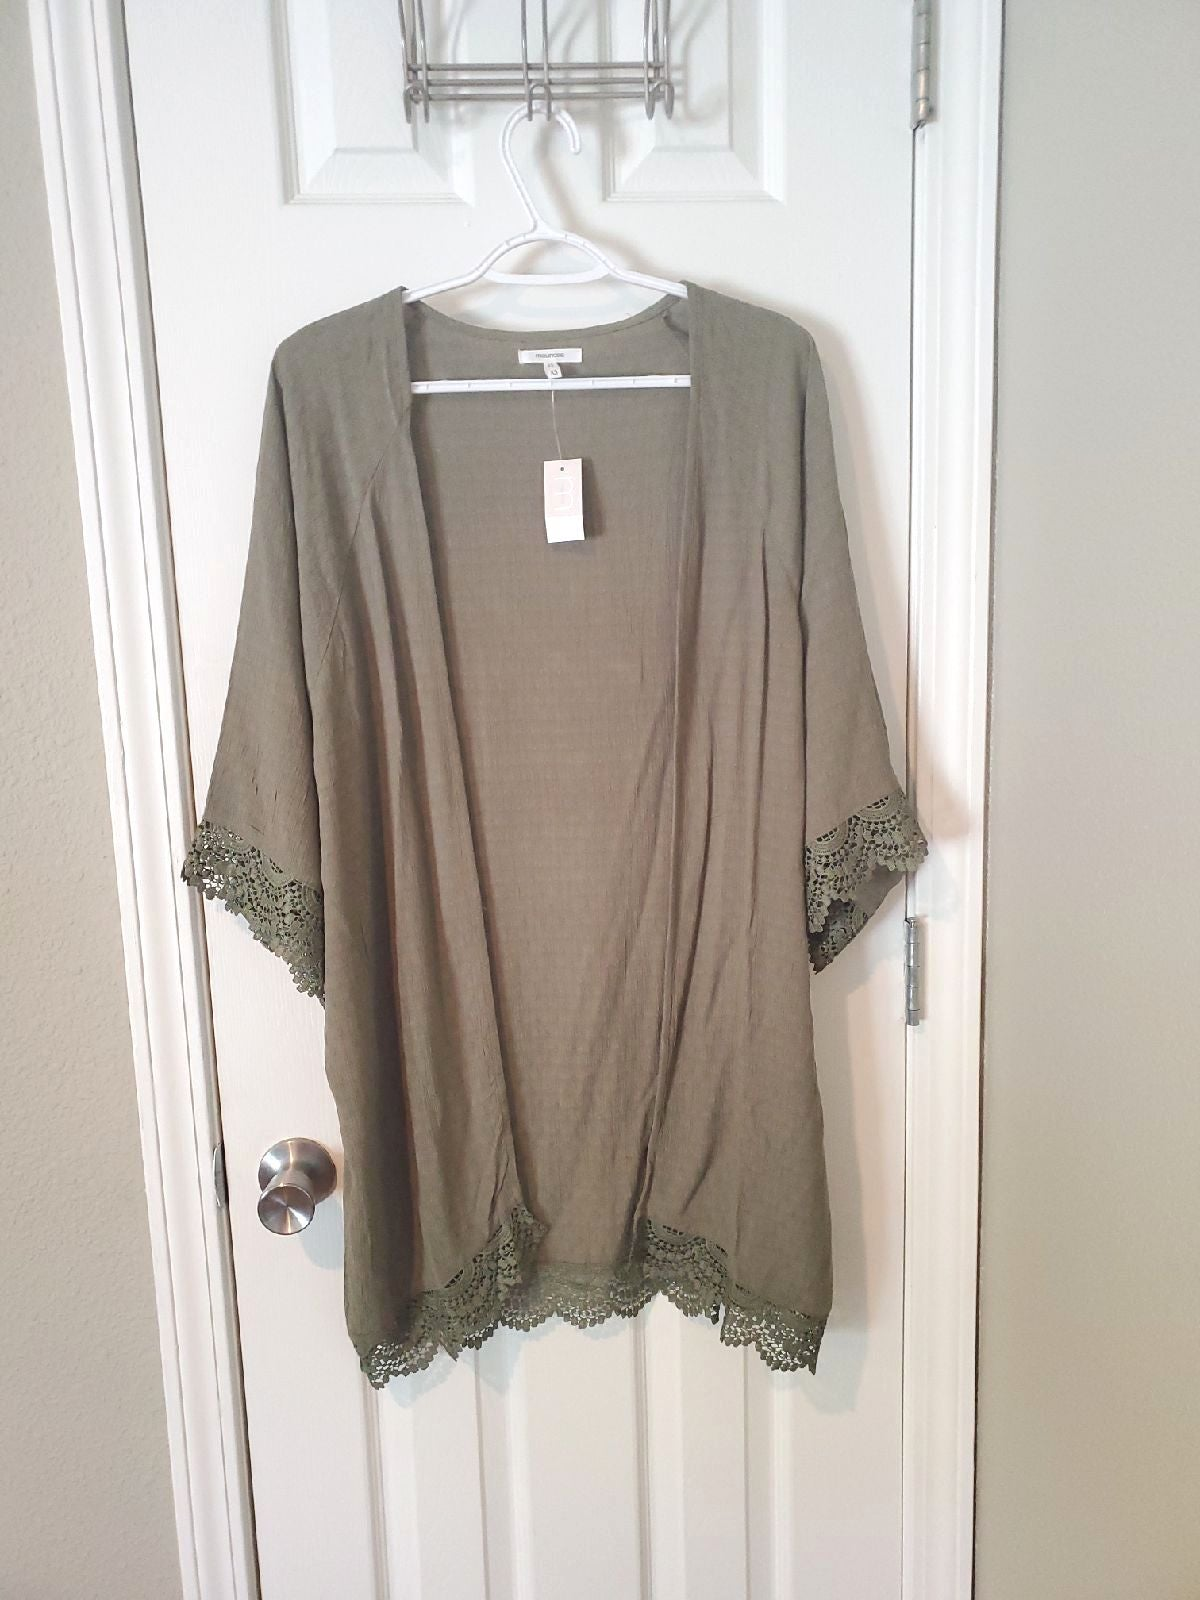 Maurices XS Green Kimino Top NEW